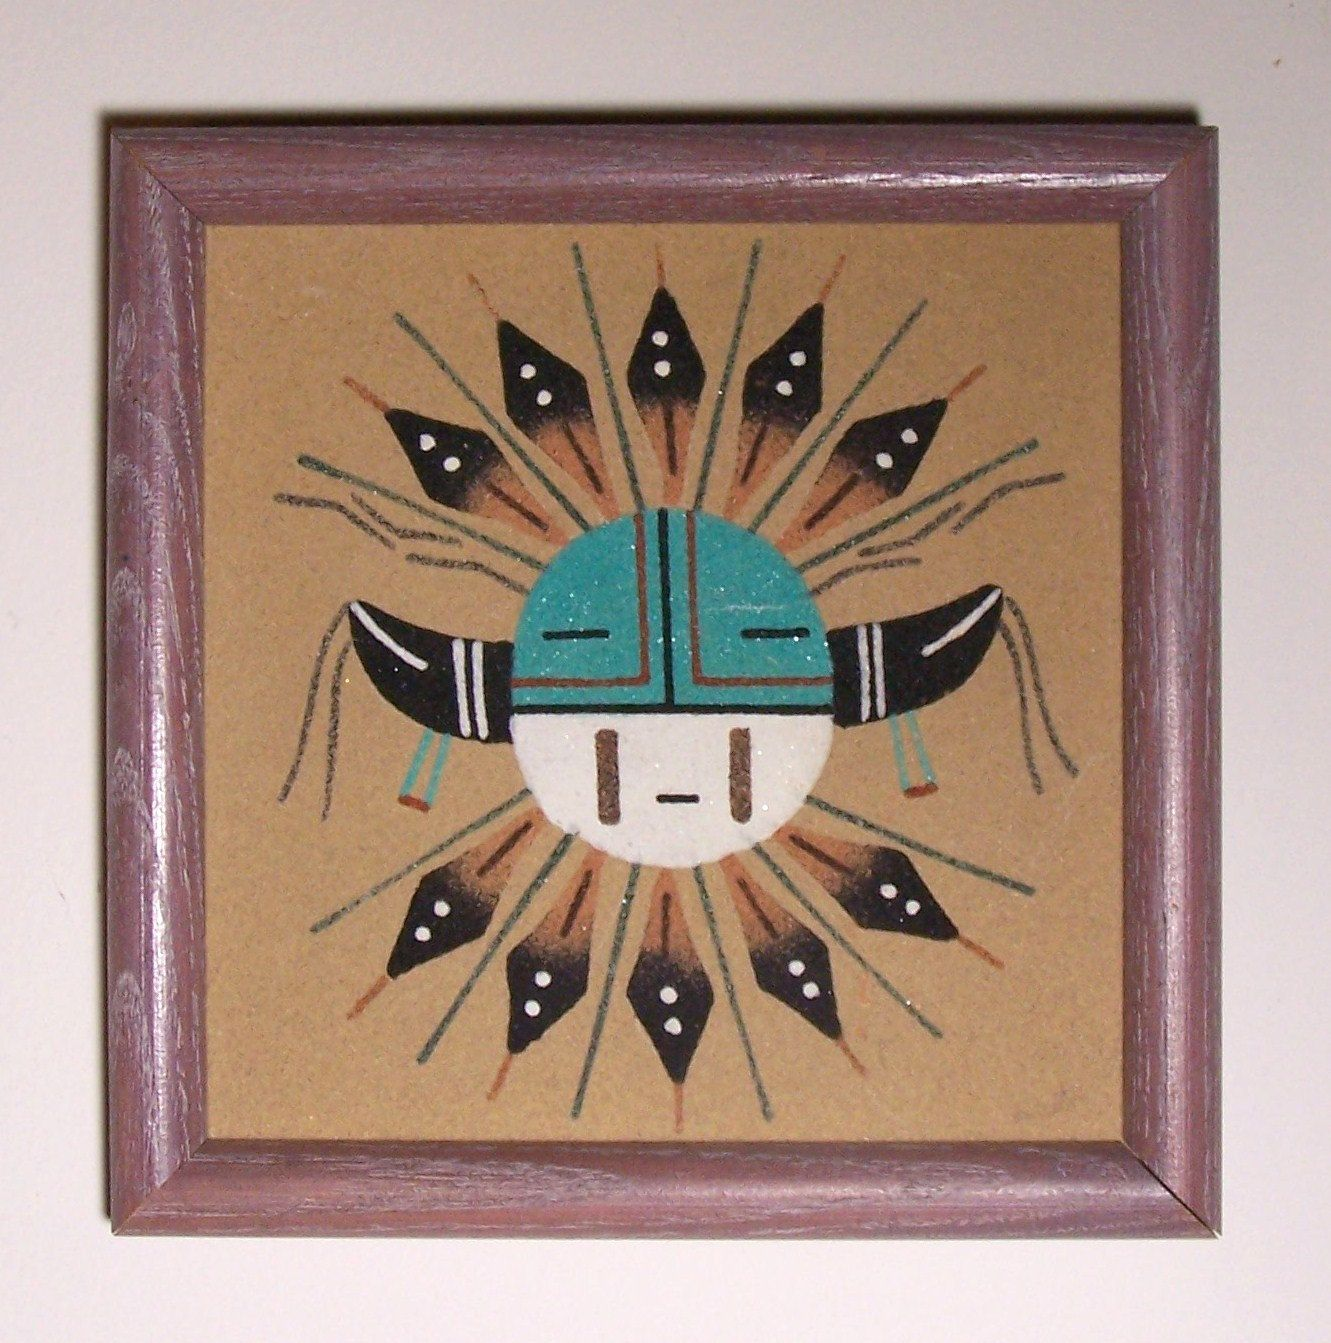 Native american art projects for elementary students native native american art projects for elementary students biocorpaavc Images